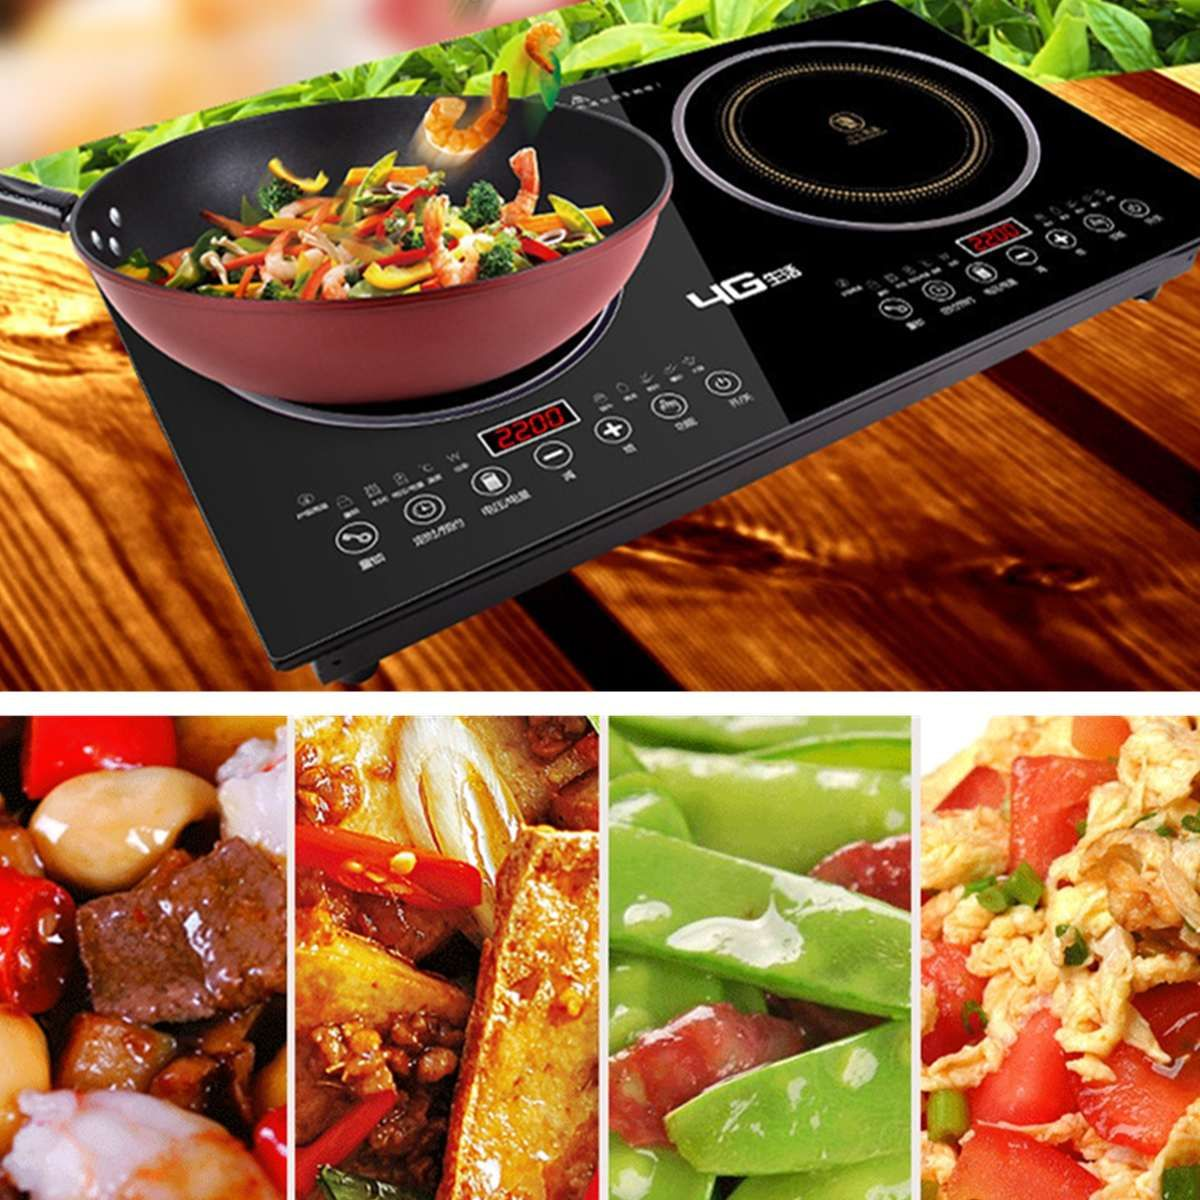 Dual-Head Cooker 2200w*2 Double Head Hot Plate Electric Induction Cooker/Cooktop/Stove/Cookware/Hob/Ceramic Free Shipping